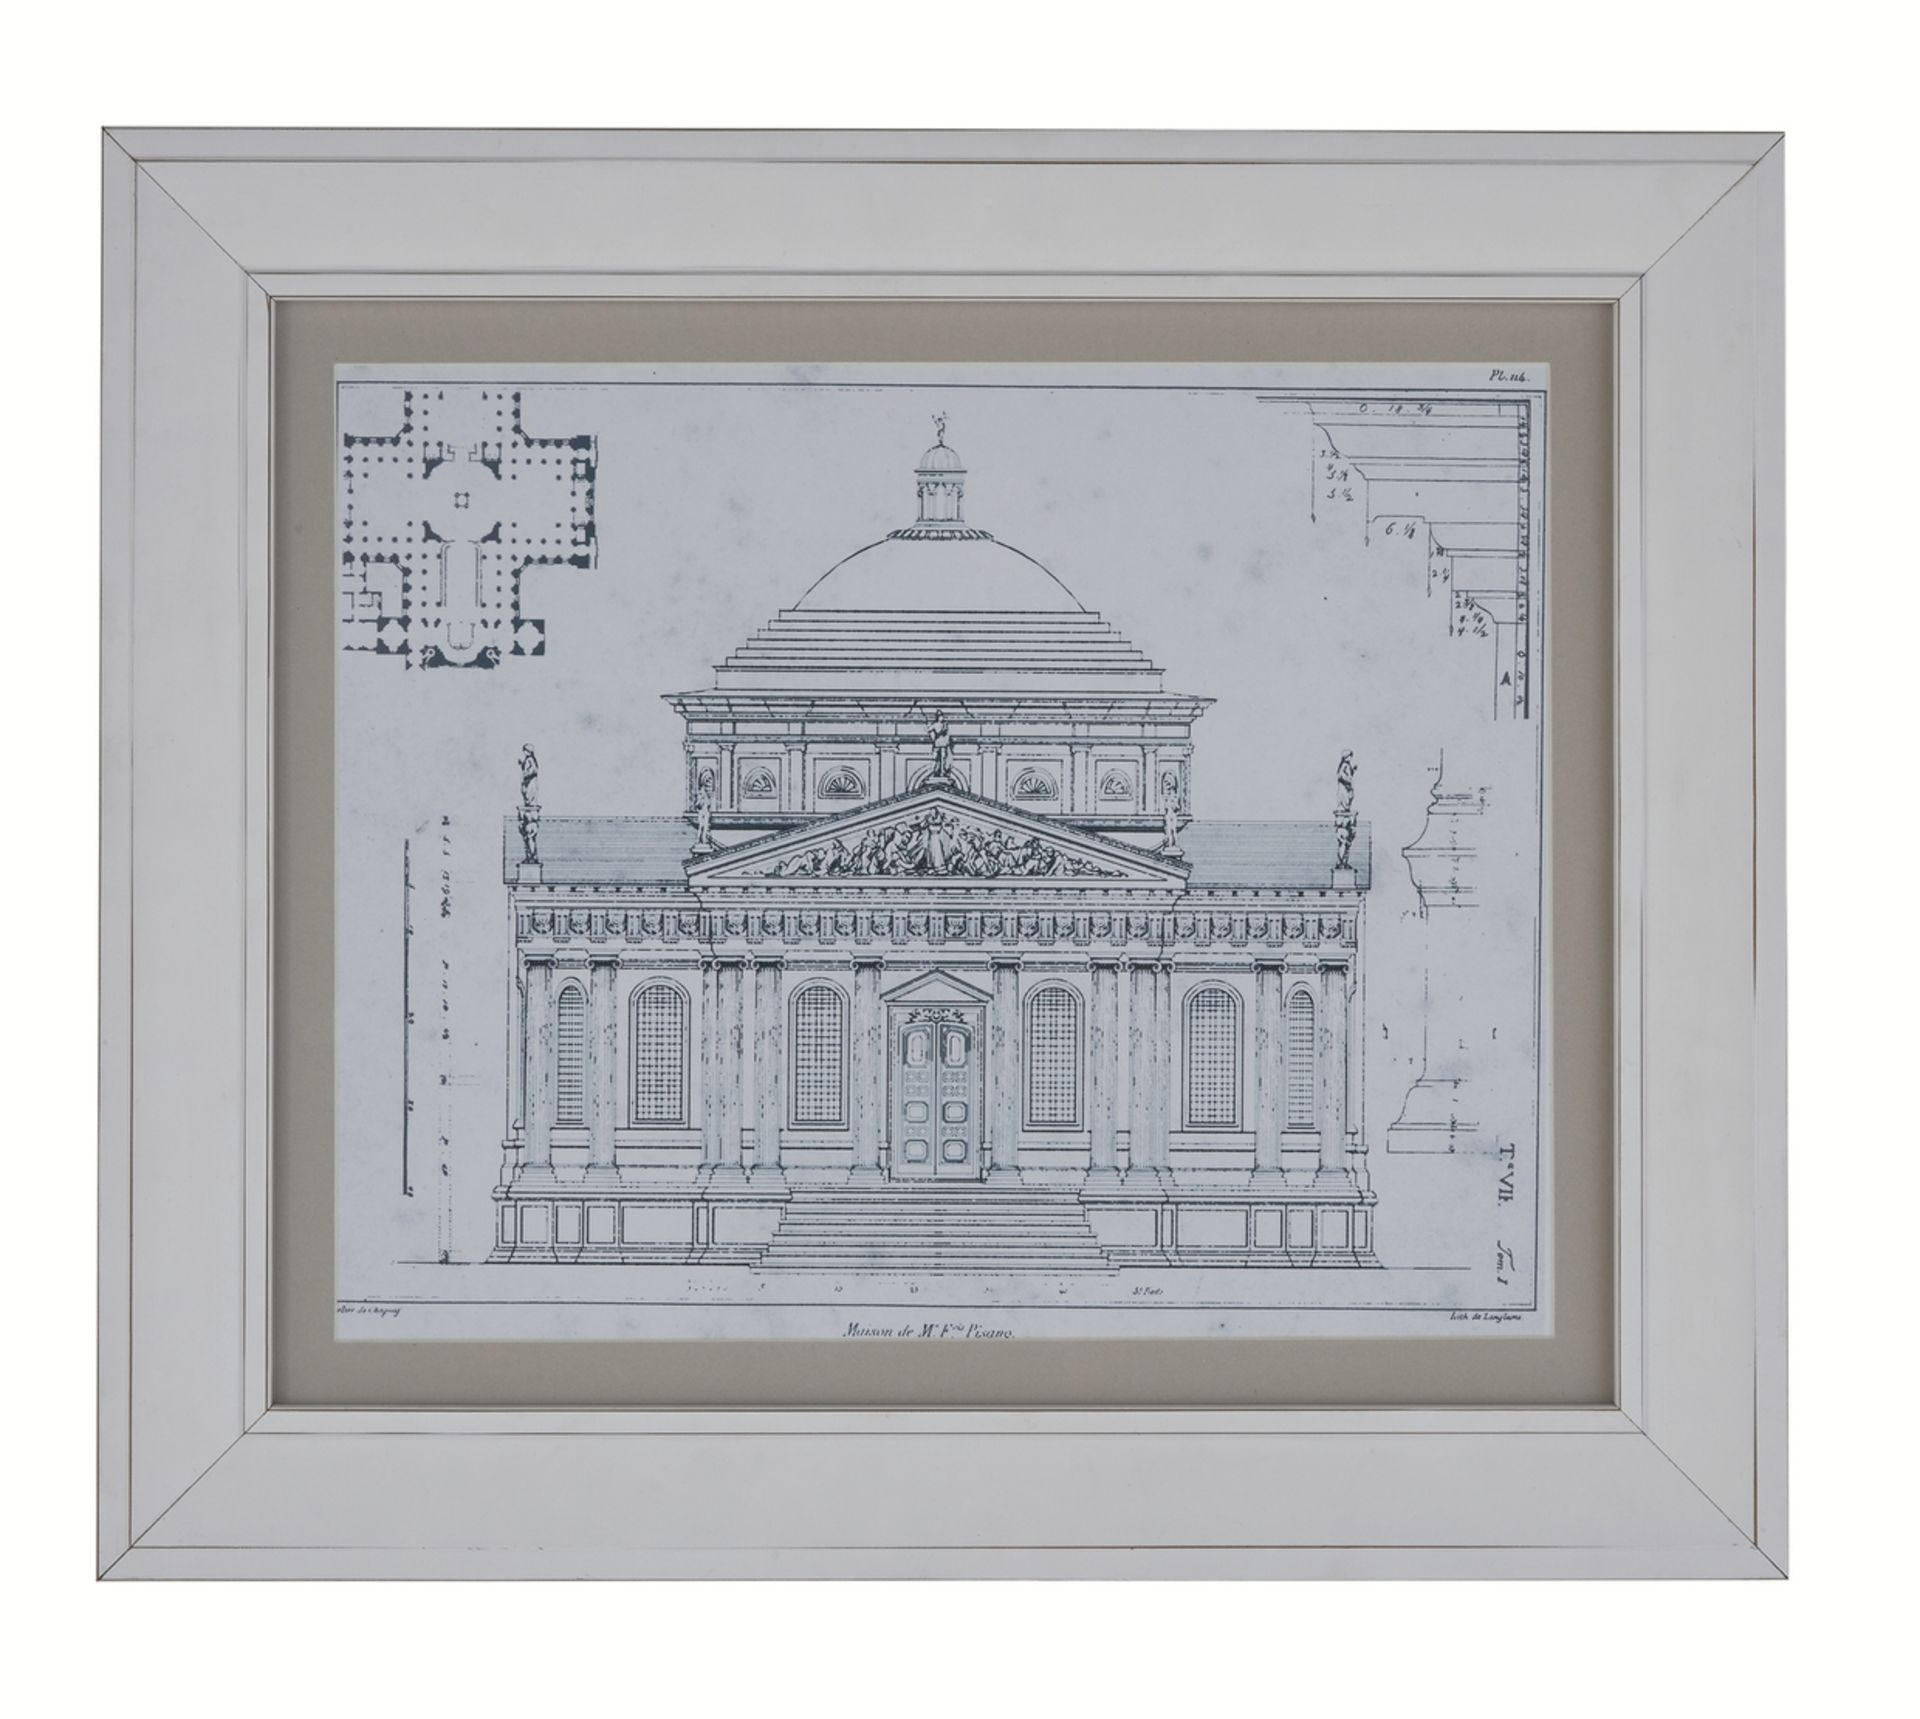 Lot 78 - 87 items Mixed Lot - Brand New Interior Décor WallArt/Canvases from Arthouse, Approx RRP £799.32